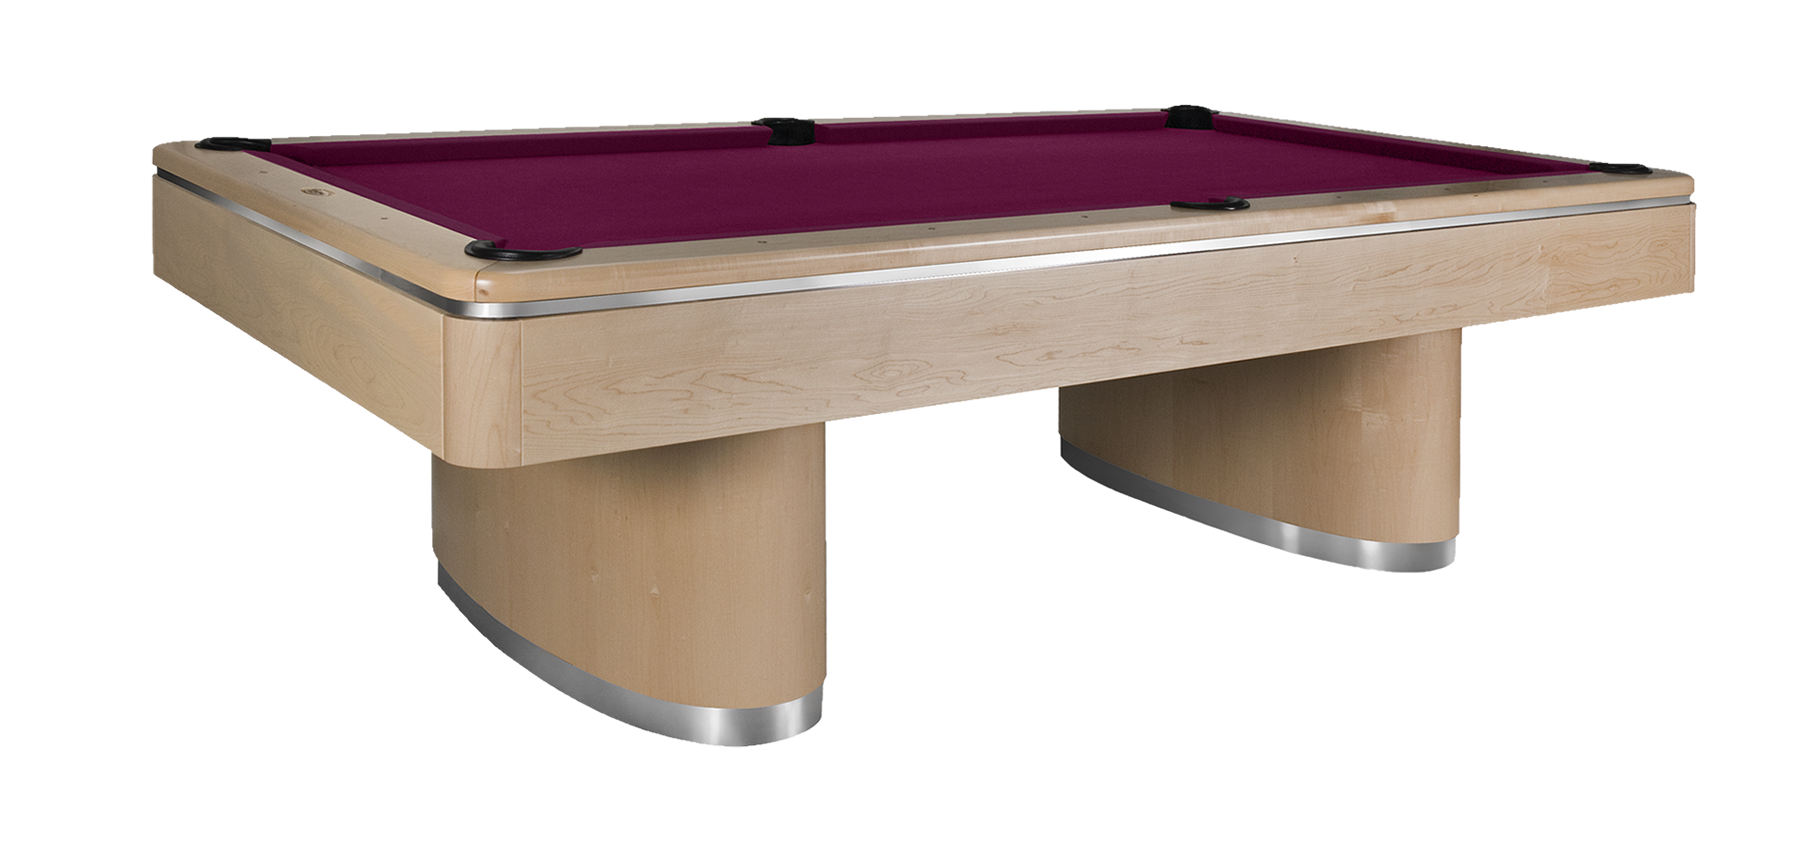 Olhausen Billiards Billiards And Barstools Gallery Pool Tables - Pool table movers new orleans